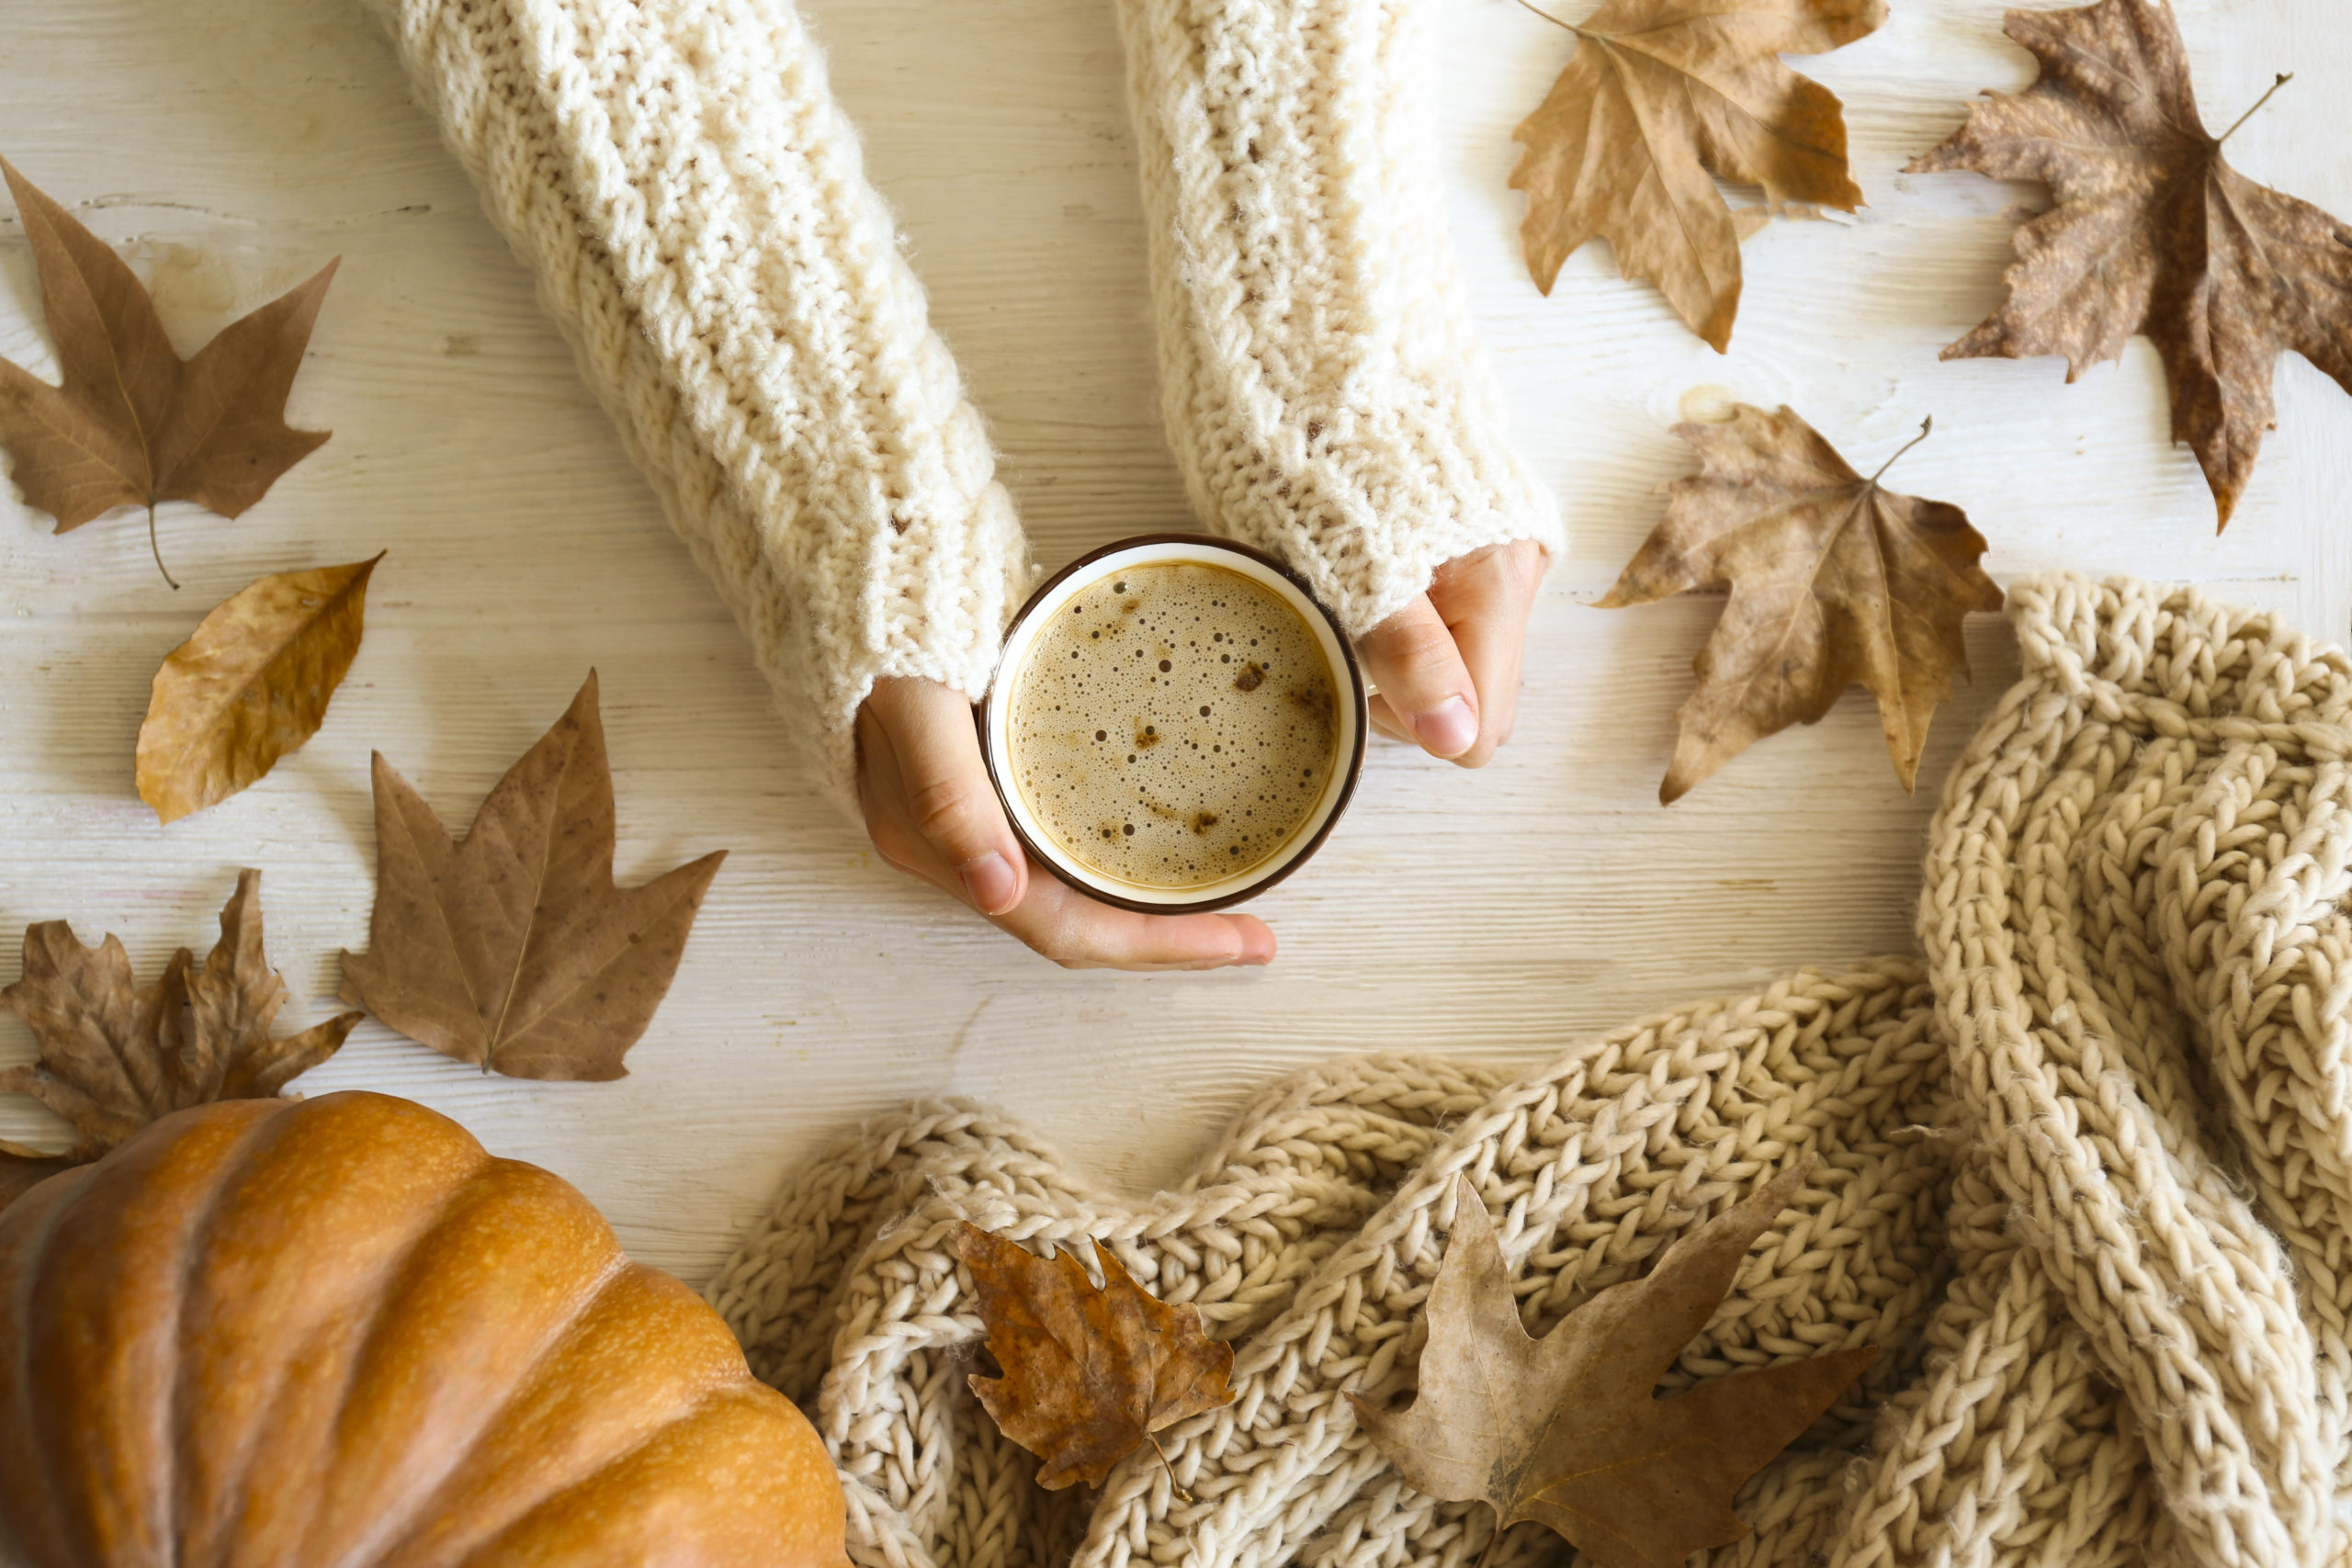 Aerial view of hands in white sweater holding coffee while surrounded by pumpkins and leaves